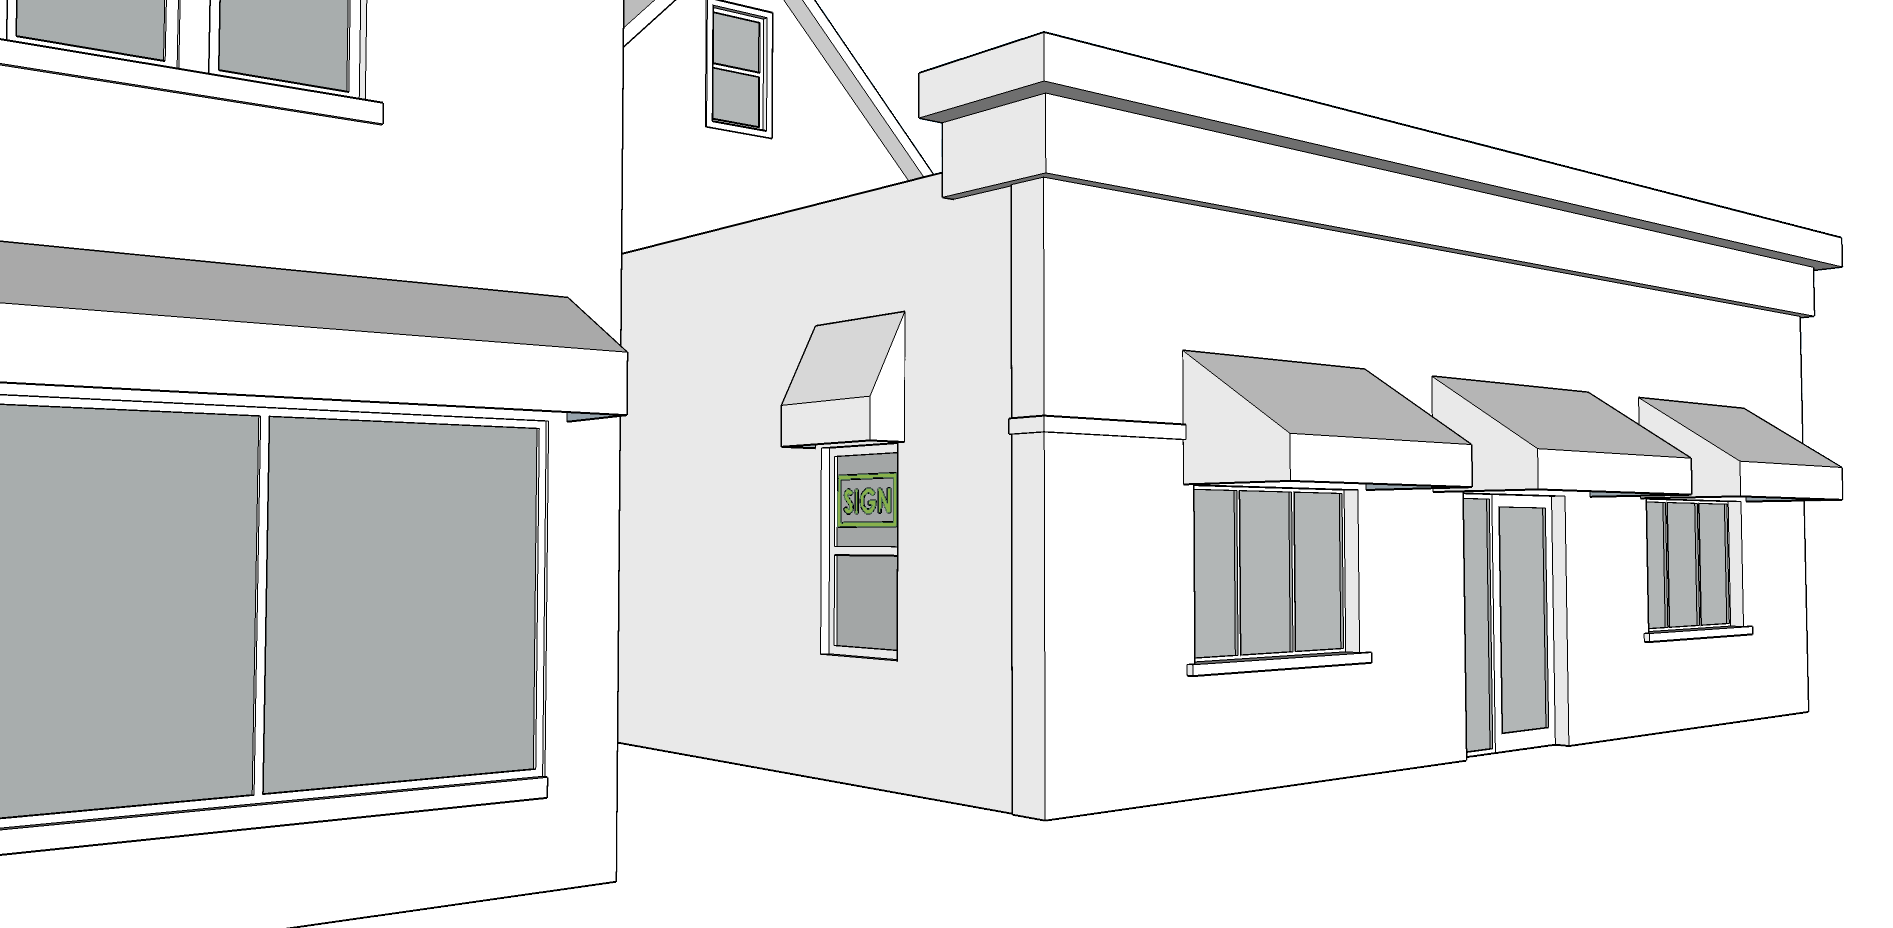 WINDOW SIGN   - Not to exceed 20 SF.  - Not to exceed 25% of window area.  - Neon signs cannot be larger than 6 SF.  - Font cannot be taller than 8 in.  - Cannot face an adjacent residential use.